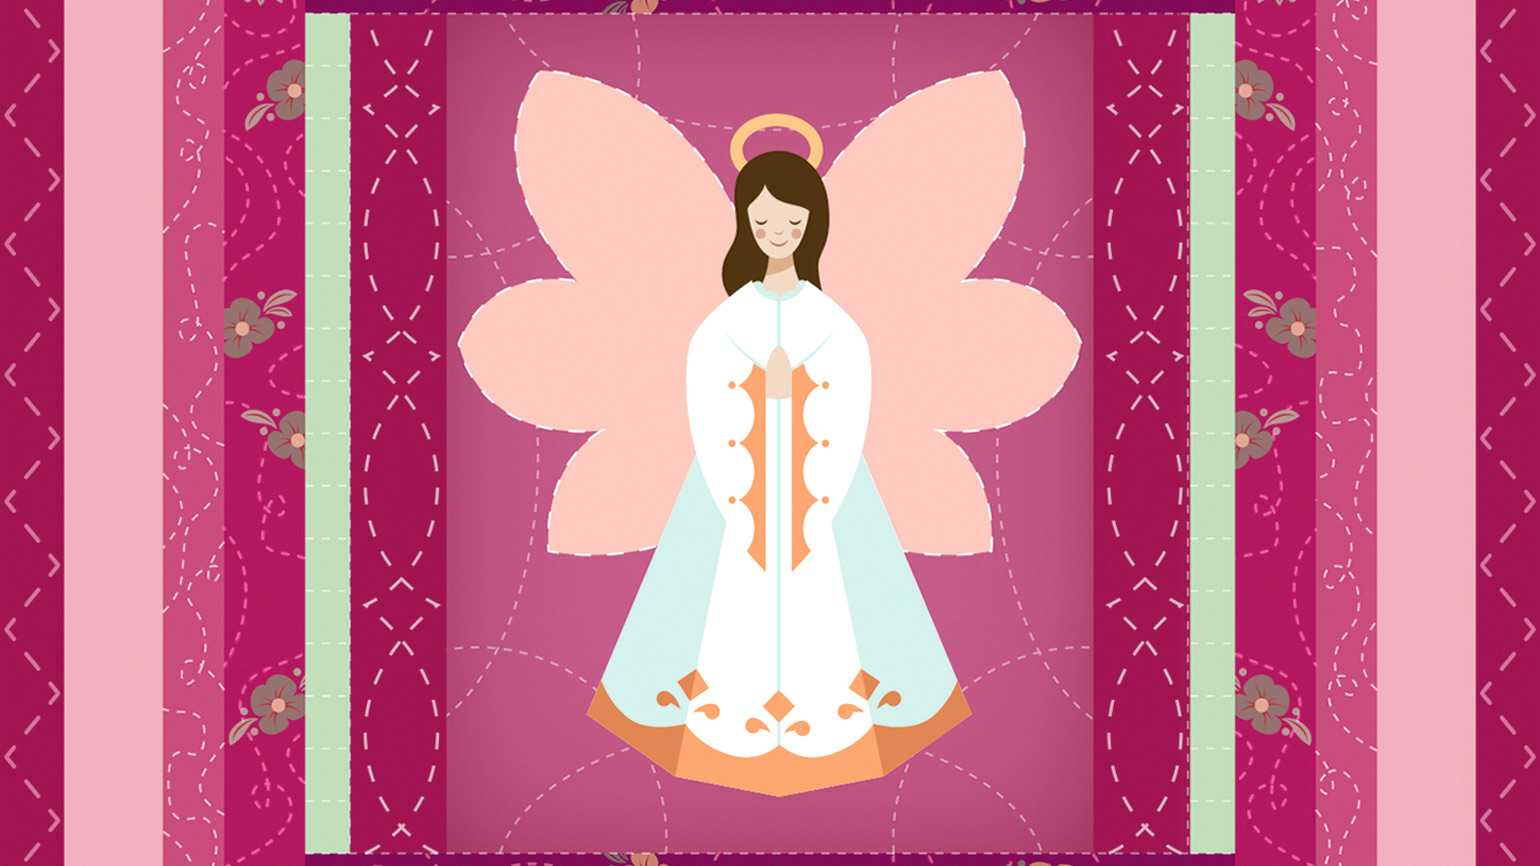 A colorful illustration of a patterned quilt with an angel sewn in the middle.